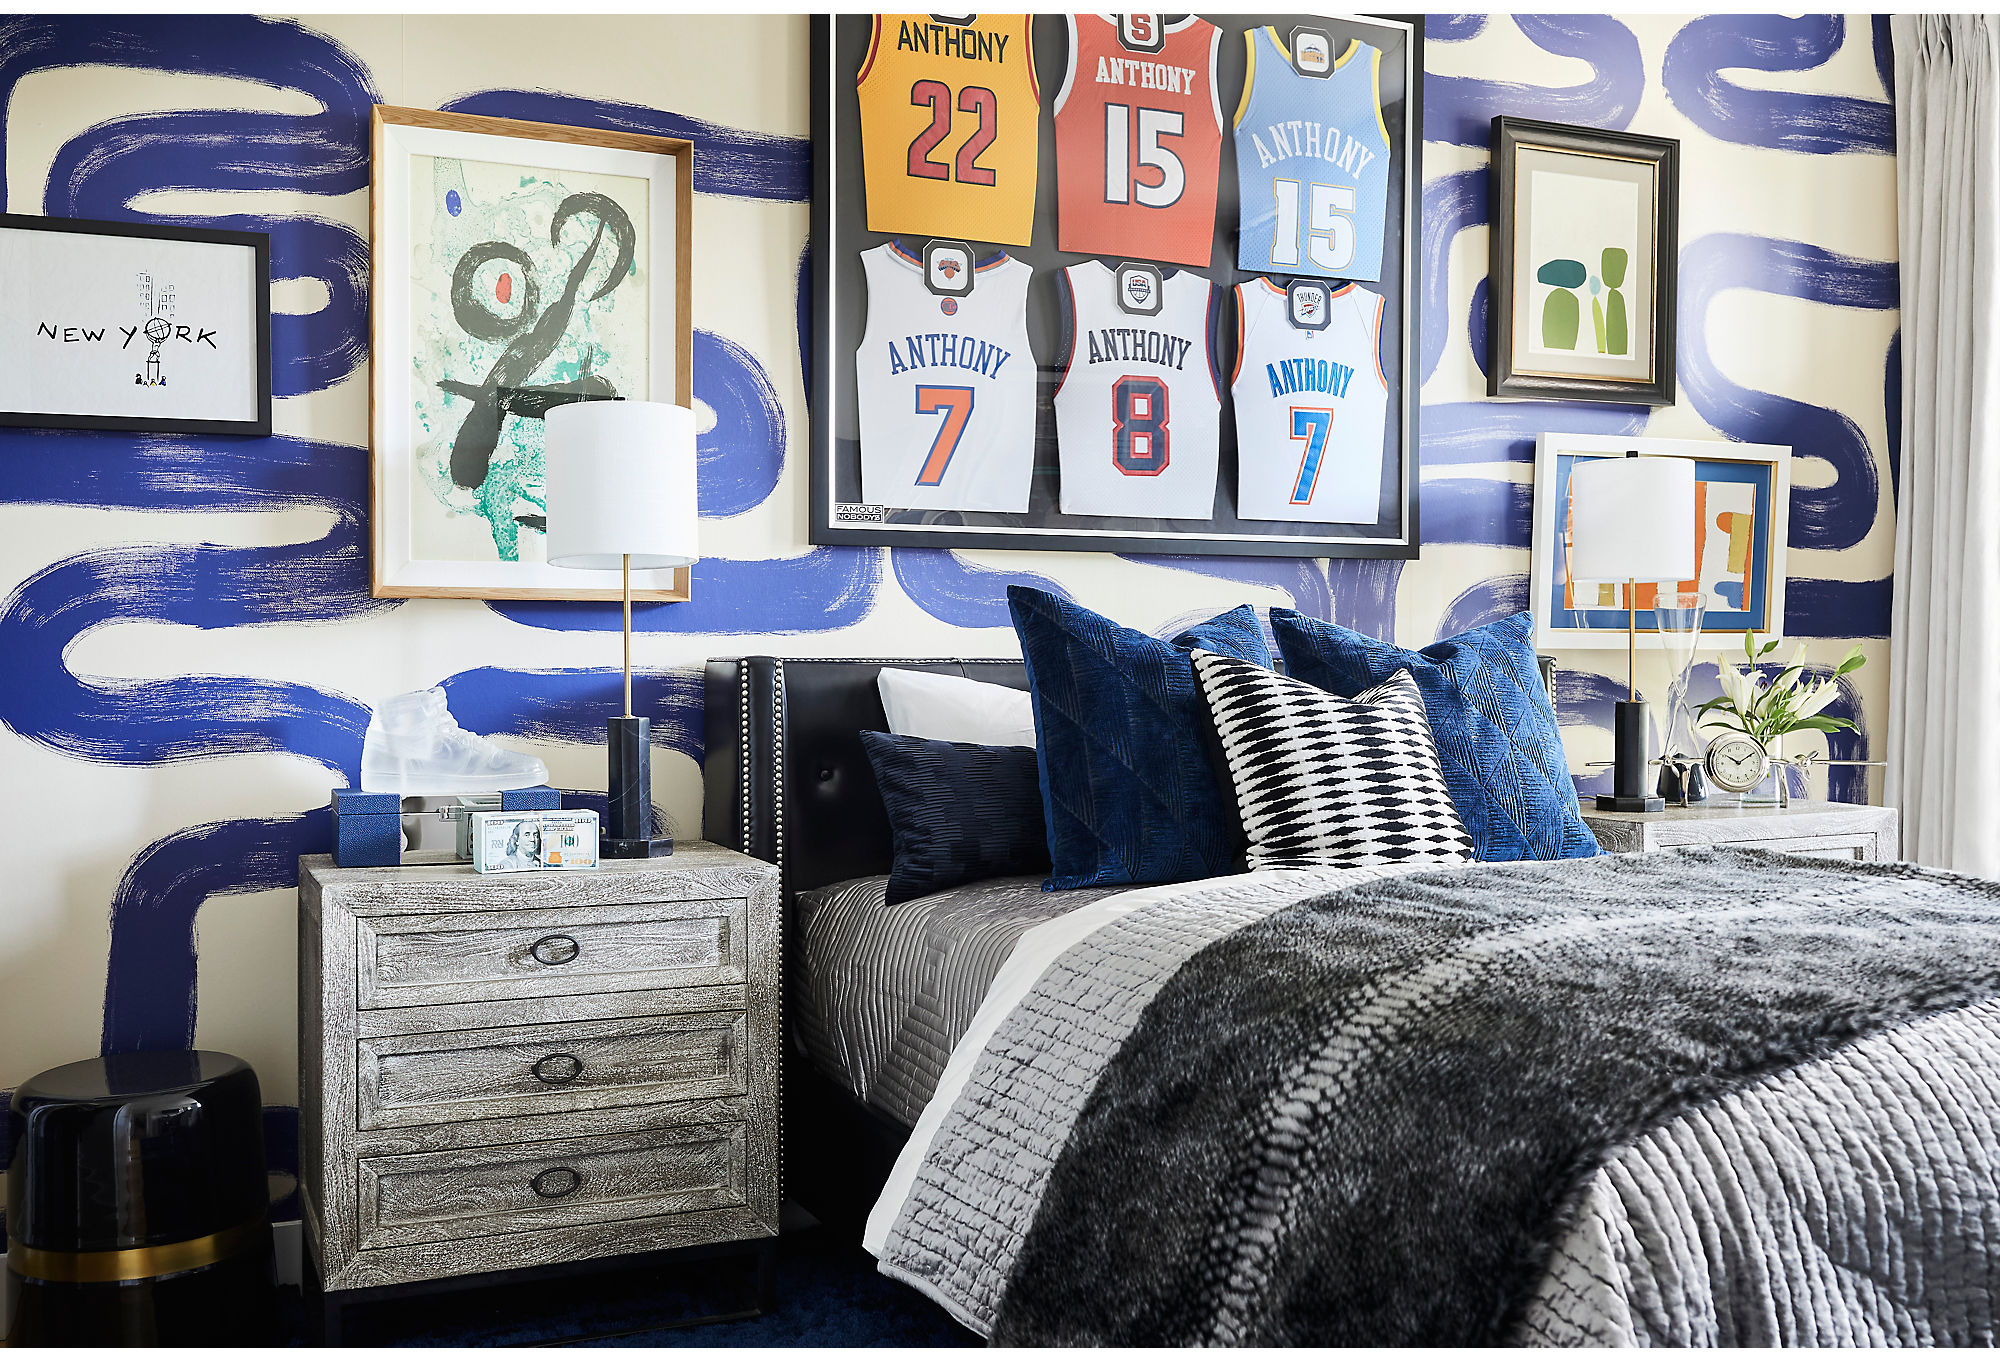 Nikki had a lot of fun with the palette in the room of La La's son. She hung together multiple pieces of art alongside the jerseys of Kiyan's father, Carmello Anthony.